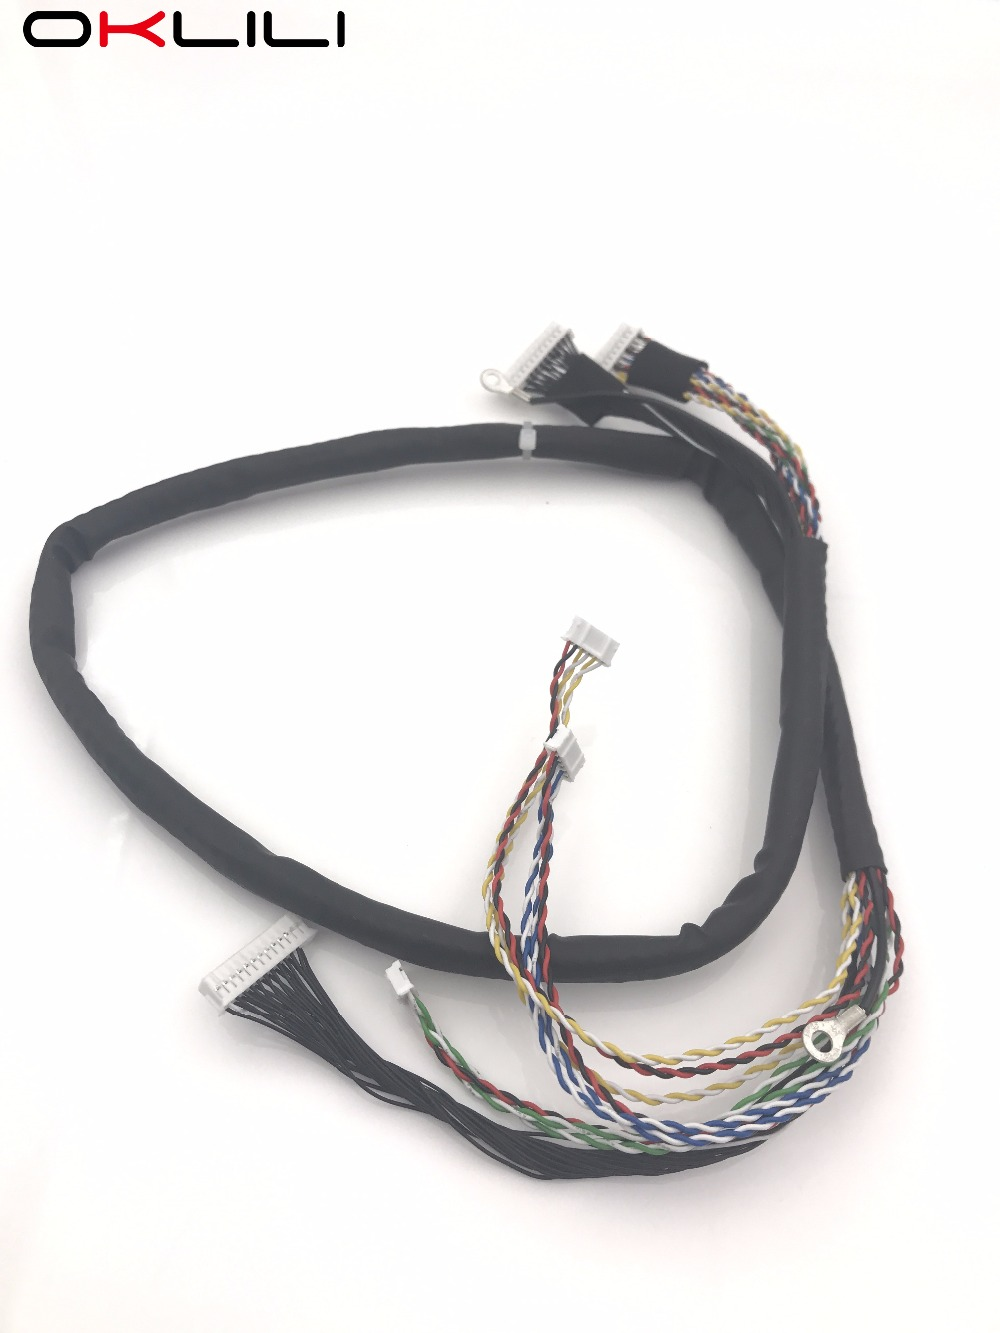 5PCX Q7404 50007 ADF Cable Assy Harness for HP Enterprise 500 MFP M525 M525dn M525f M525c